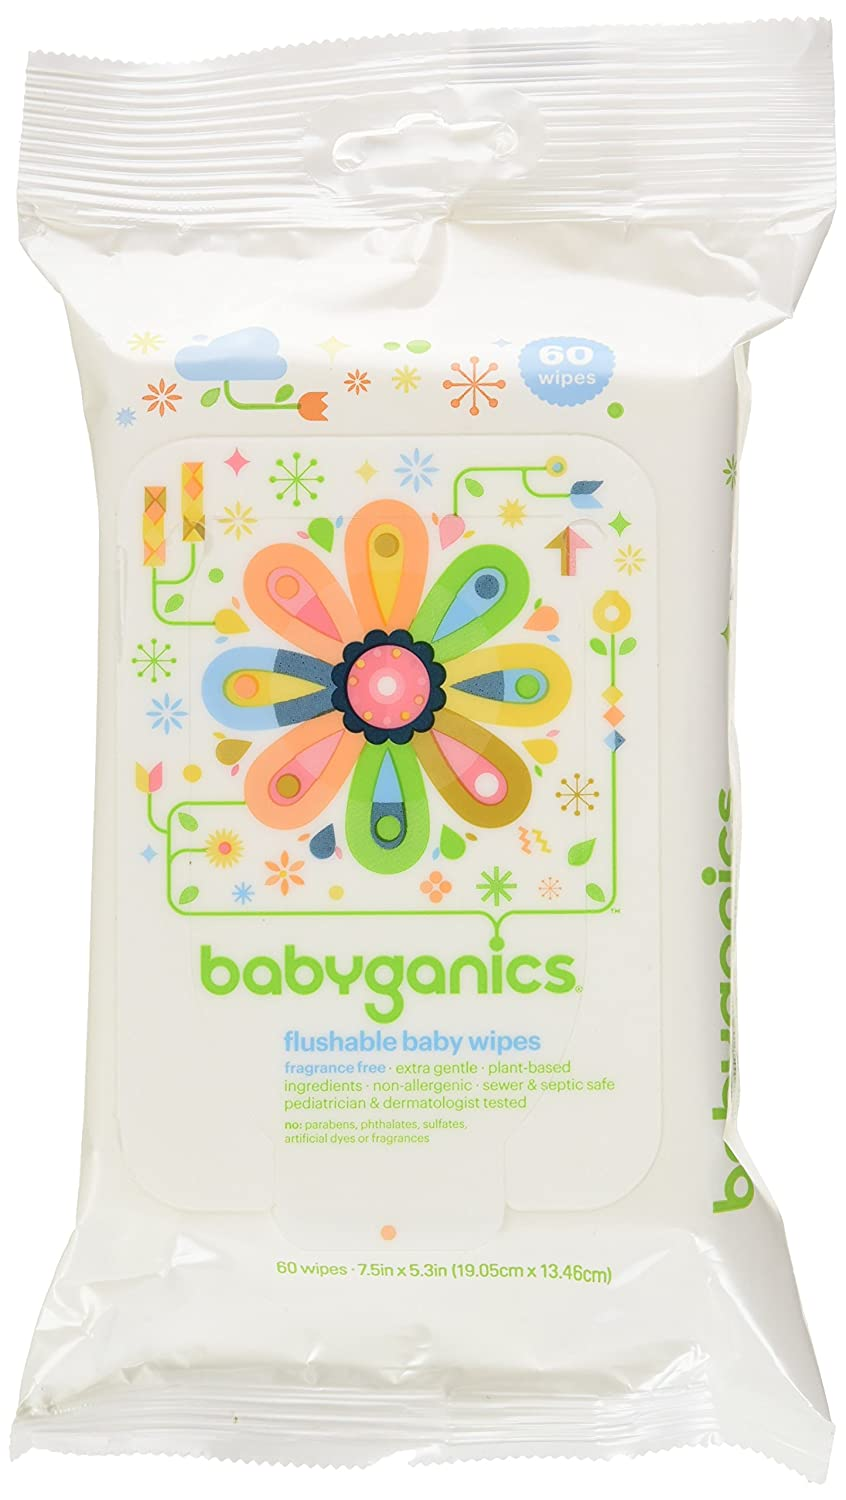 Babyganics Flushable Baby Wipes, Fragrance Free, 60-Count-Packaging May Vary (Pack of 3, 180 Total Wipes) BG-192